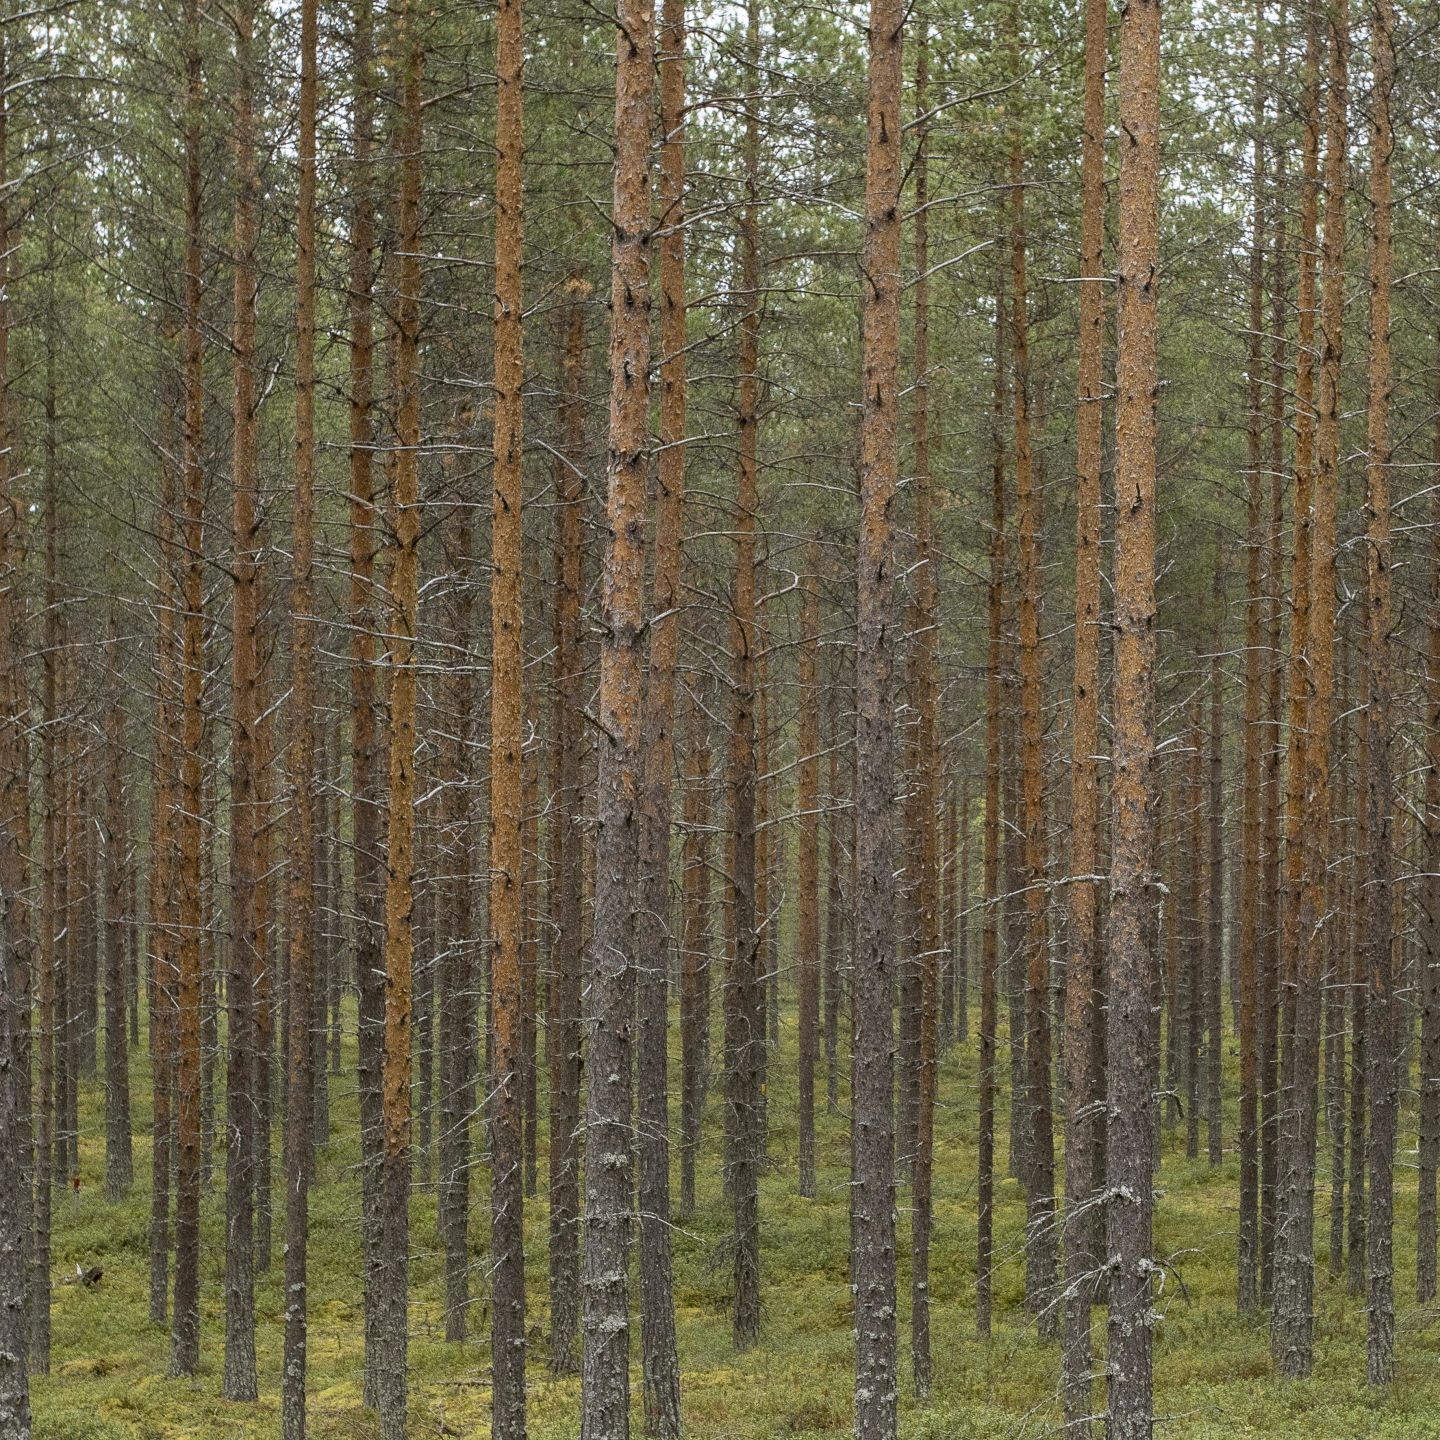 Bioeconomy and circular economy in Lapland have sustainable potential for new business and investment